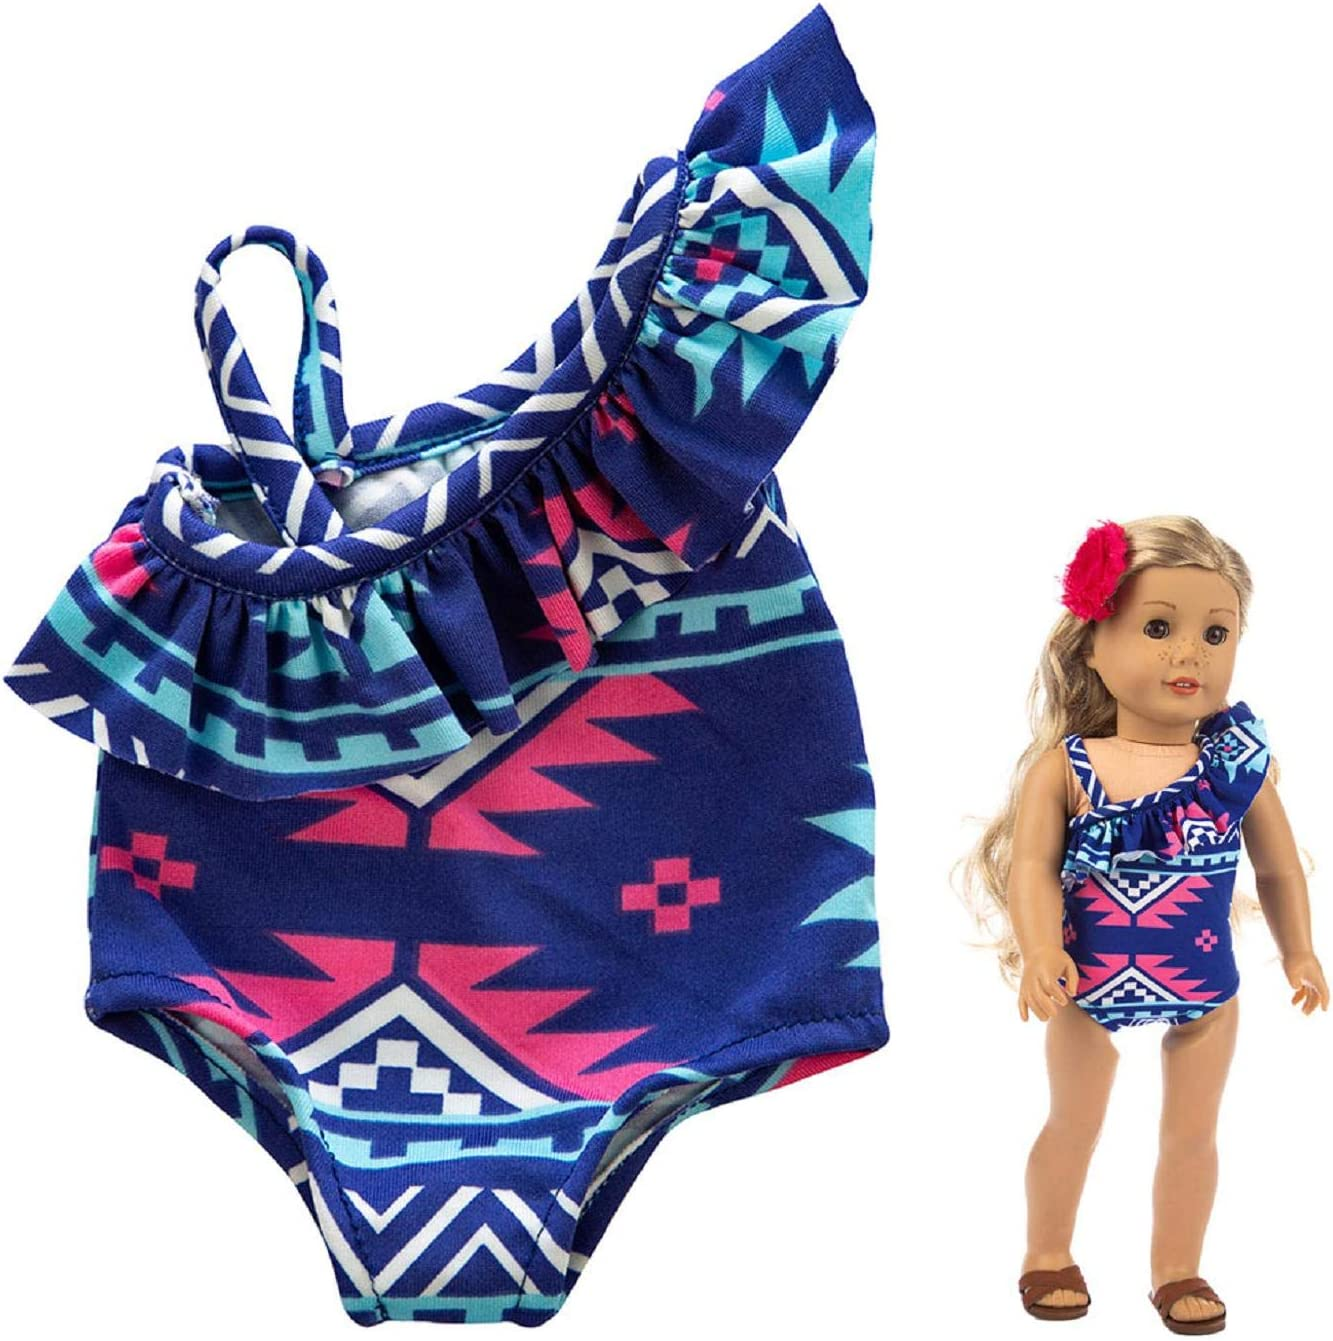 Putars Cute One-piece Swimsuit Clothes Girl Toy For 18 inch Doll Accessory Girls Toy,Swimsuit Digital Print Moana Adventure Bikini with Necklace and Flower,Birthday Gift for girls